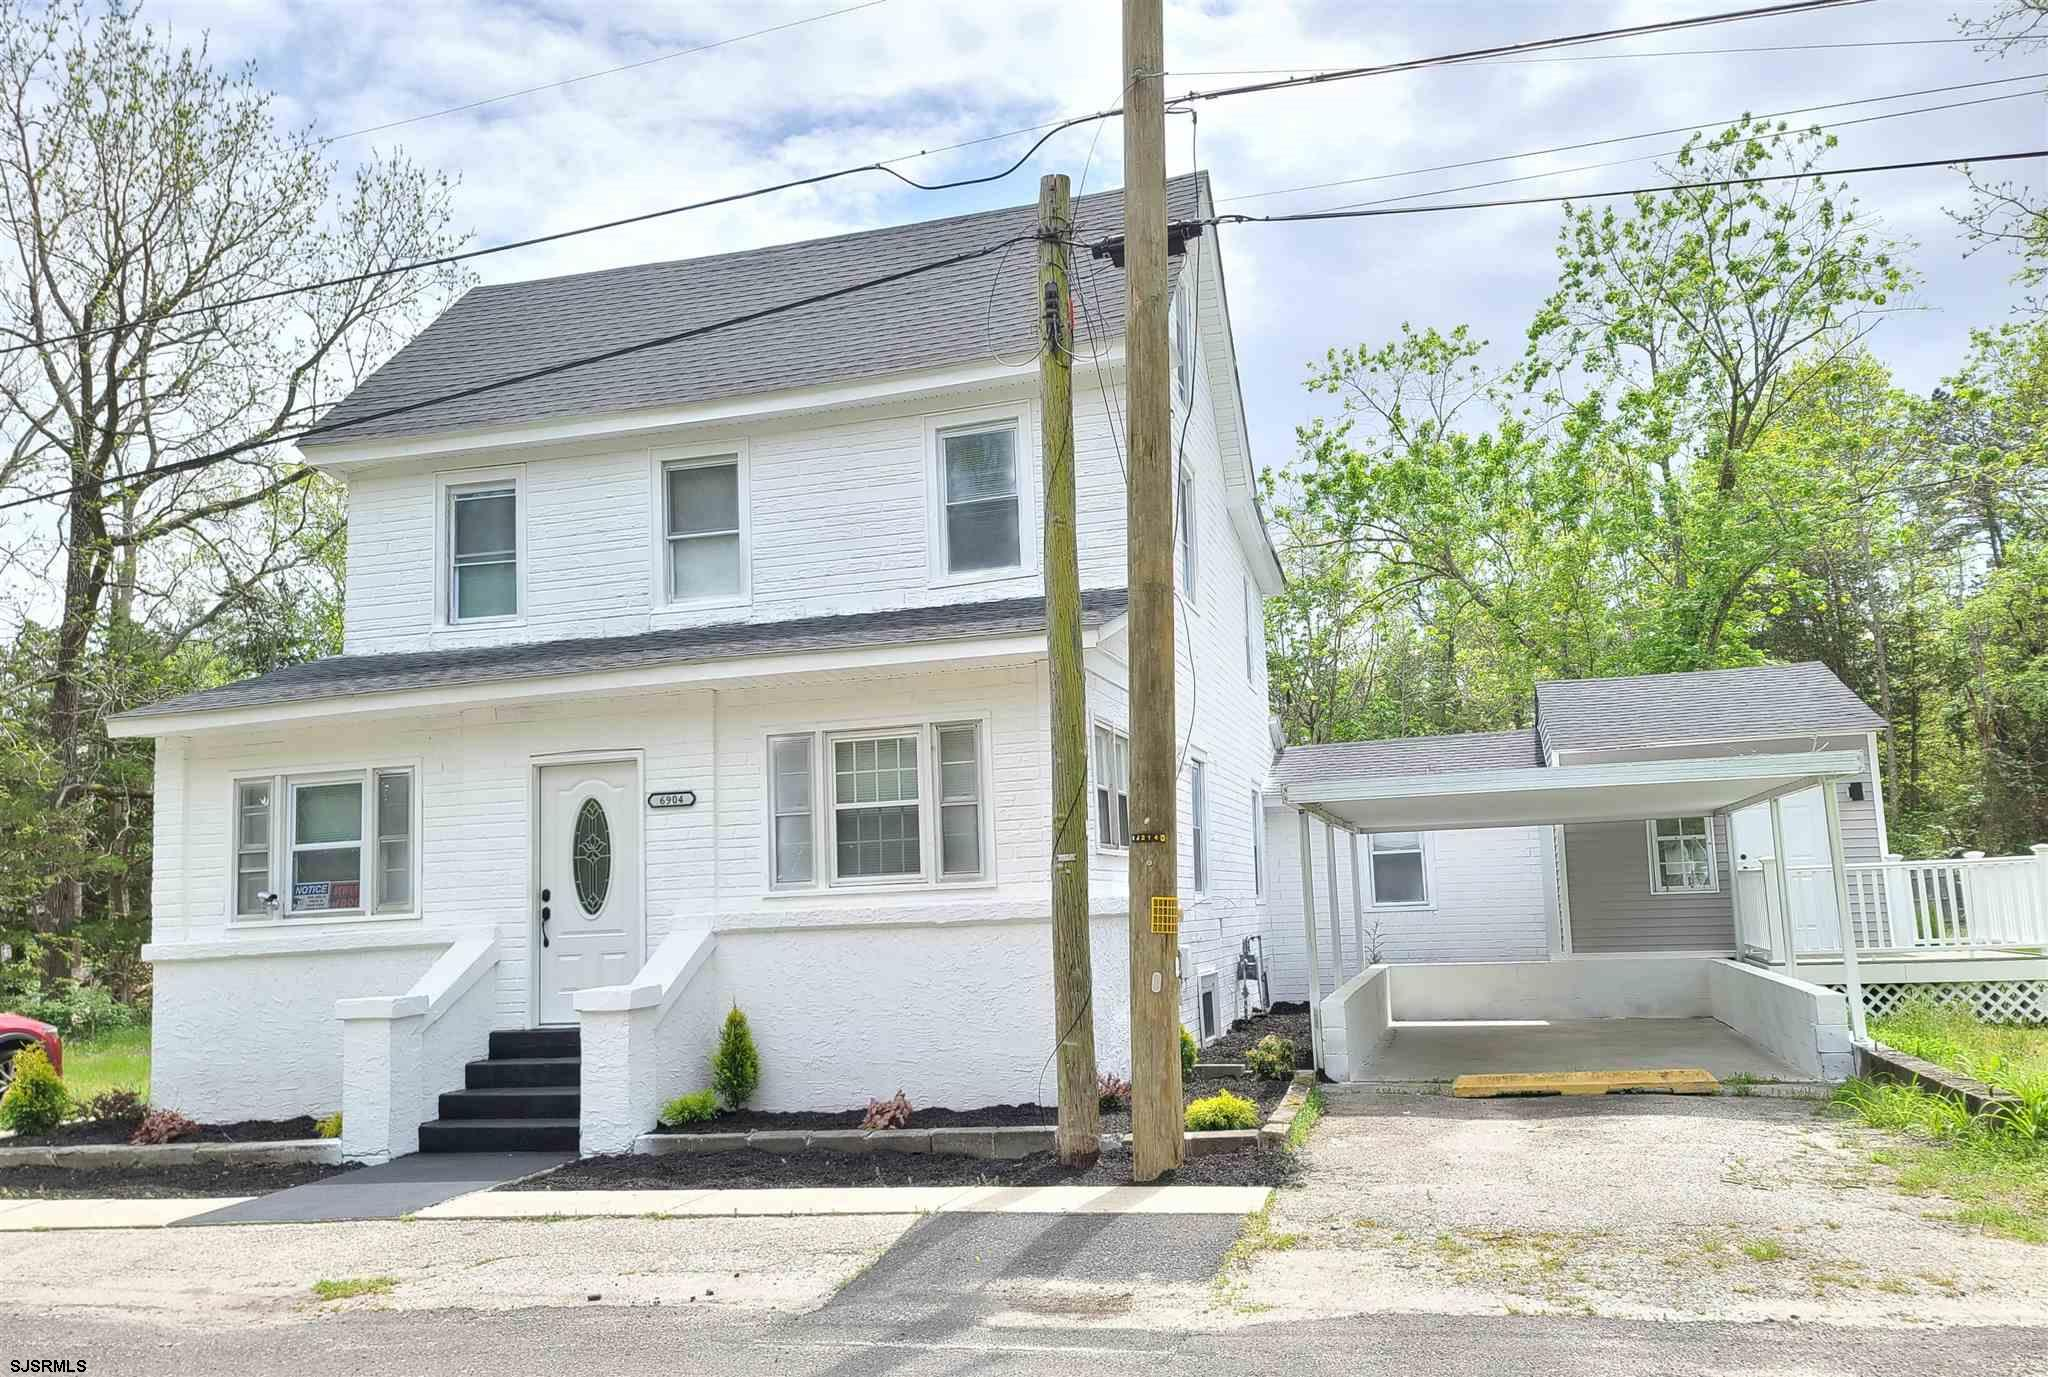 Completely renovated home features new flooring throughout, new kitchen, new appliances. 9 spacious